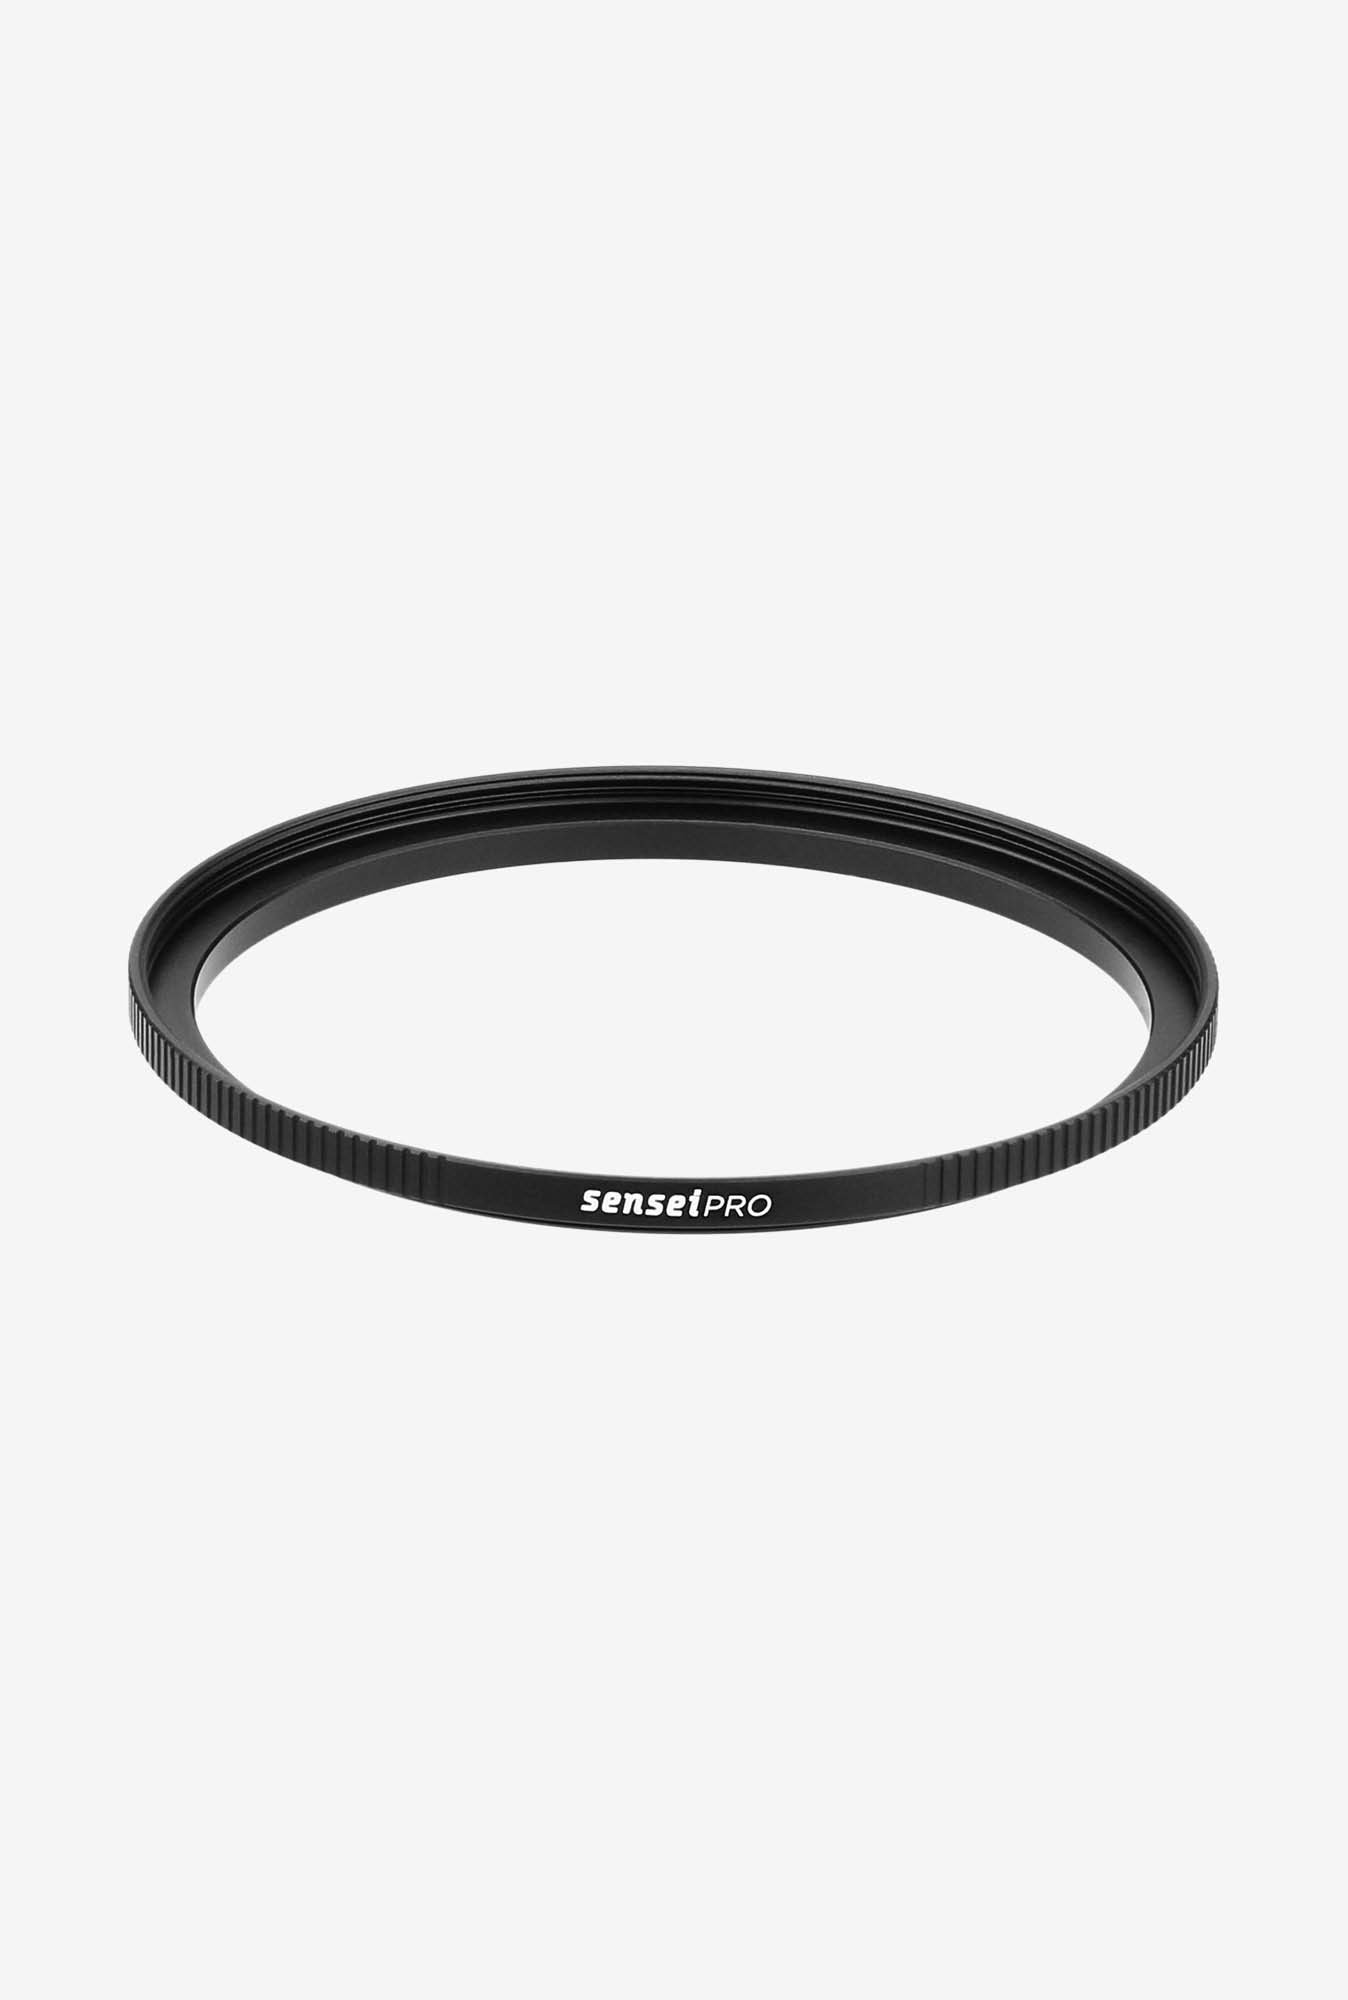 Sensie Pro SURPA7782 77-82mm Aluminium Step-Up Ring (Black)